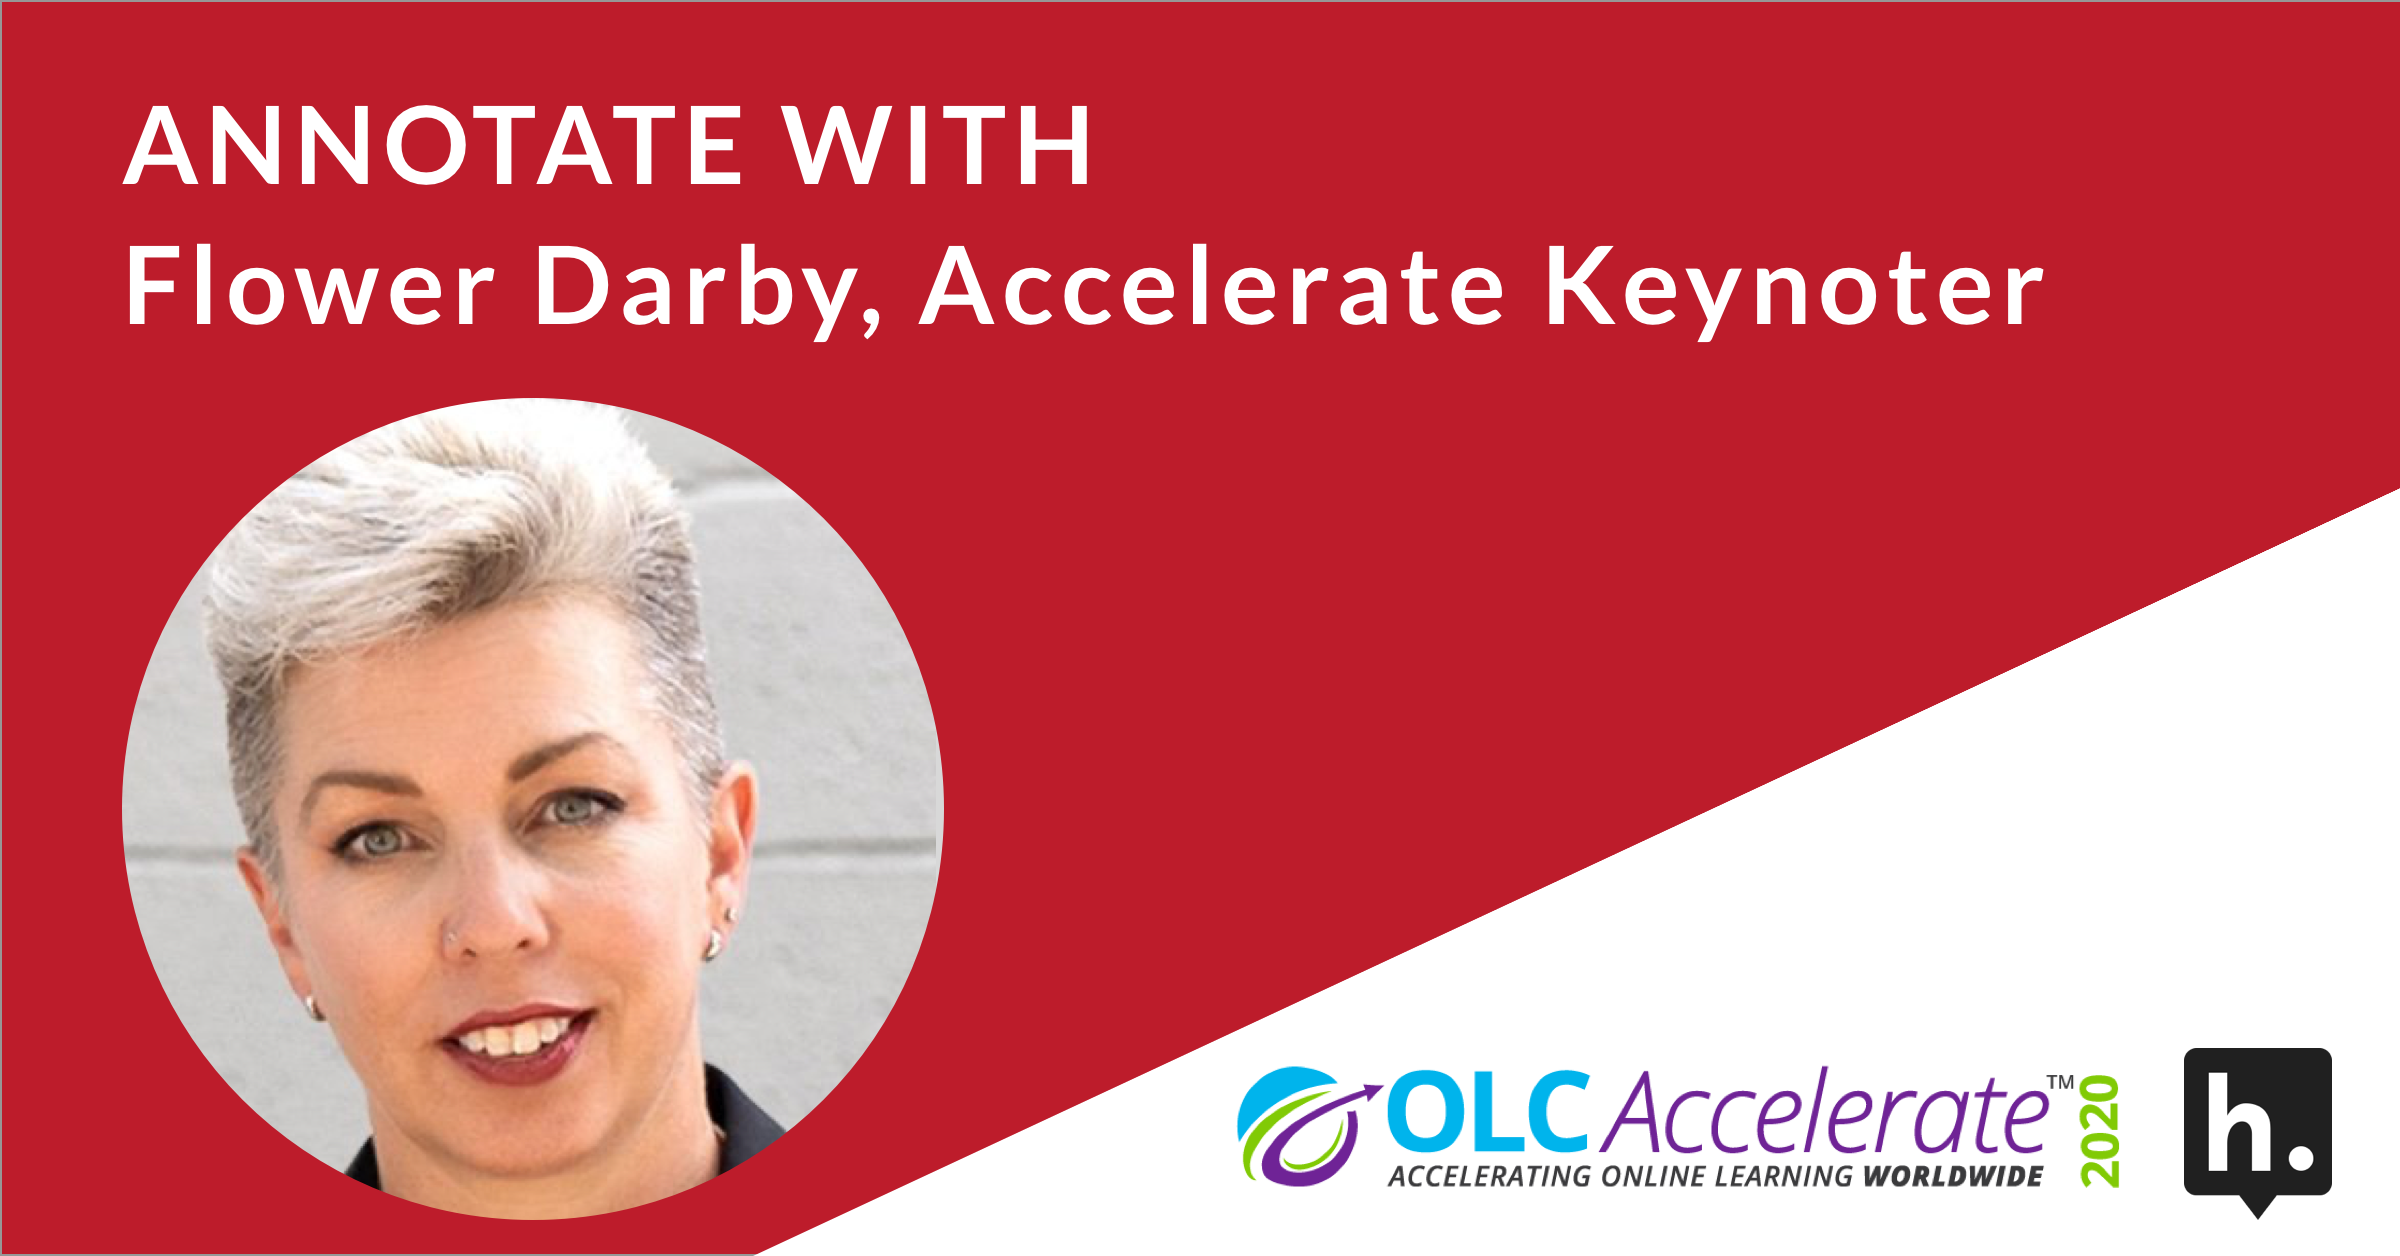 Annotate with Flower Darby, Accelerate Keynoter: her headshot and an OLC Accelerate 2020 logo.